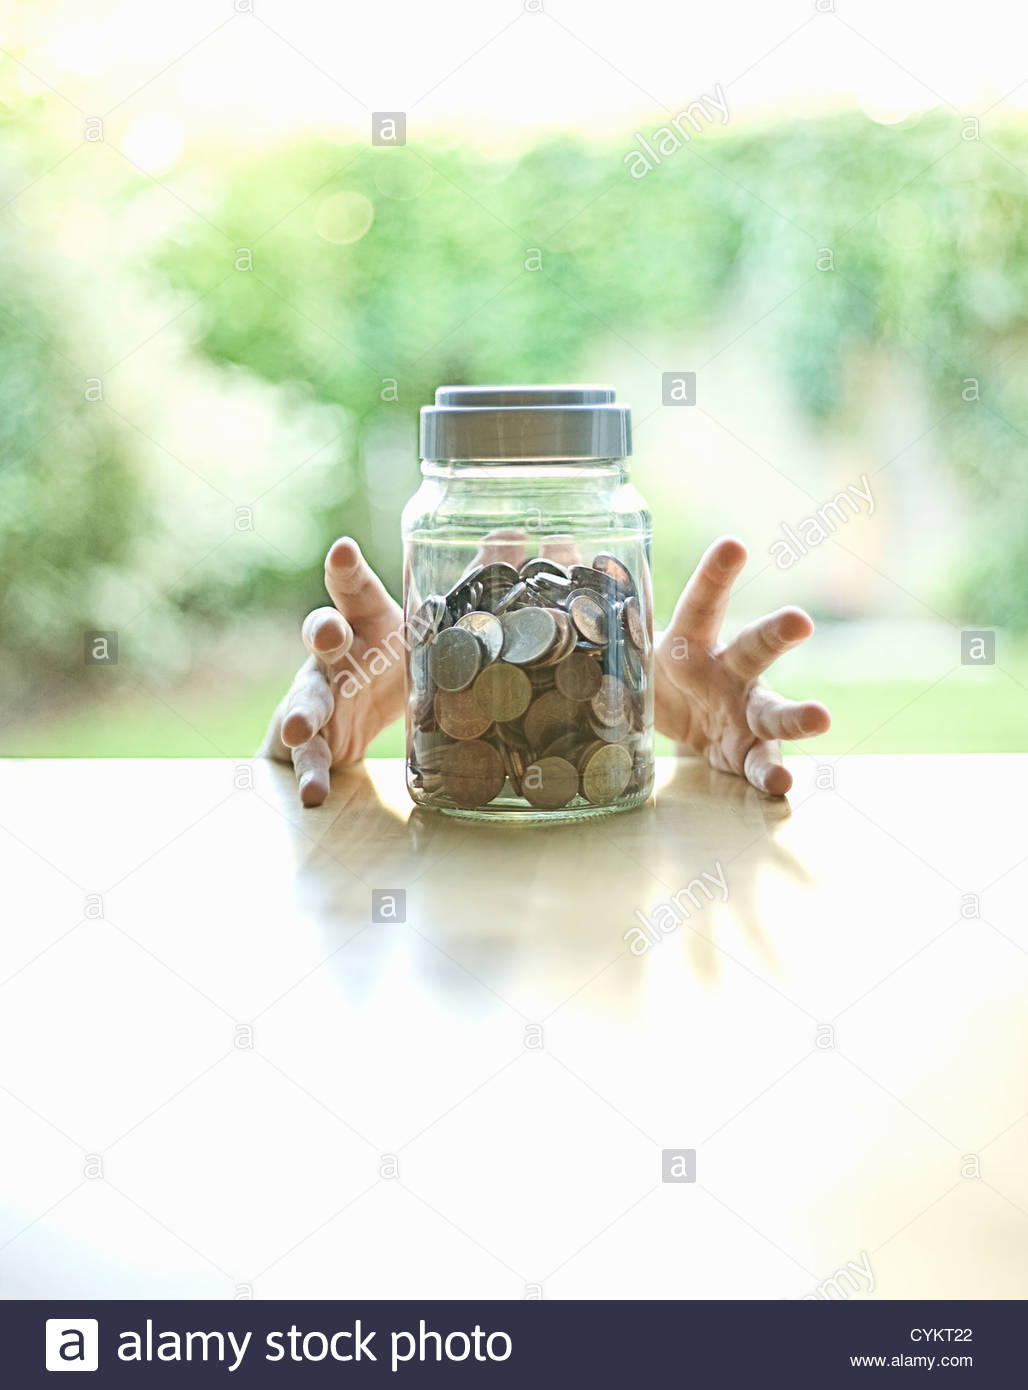 Attrapant les mains de changement jar Photo Stock